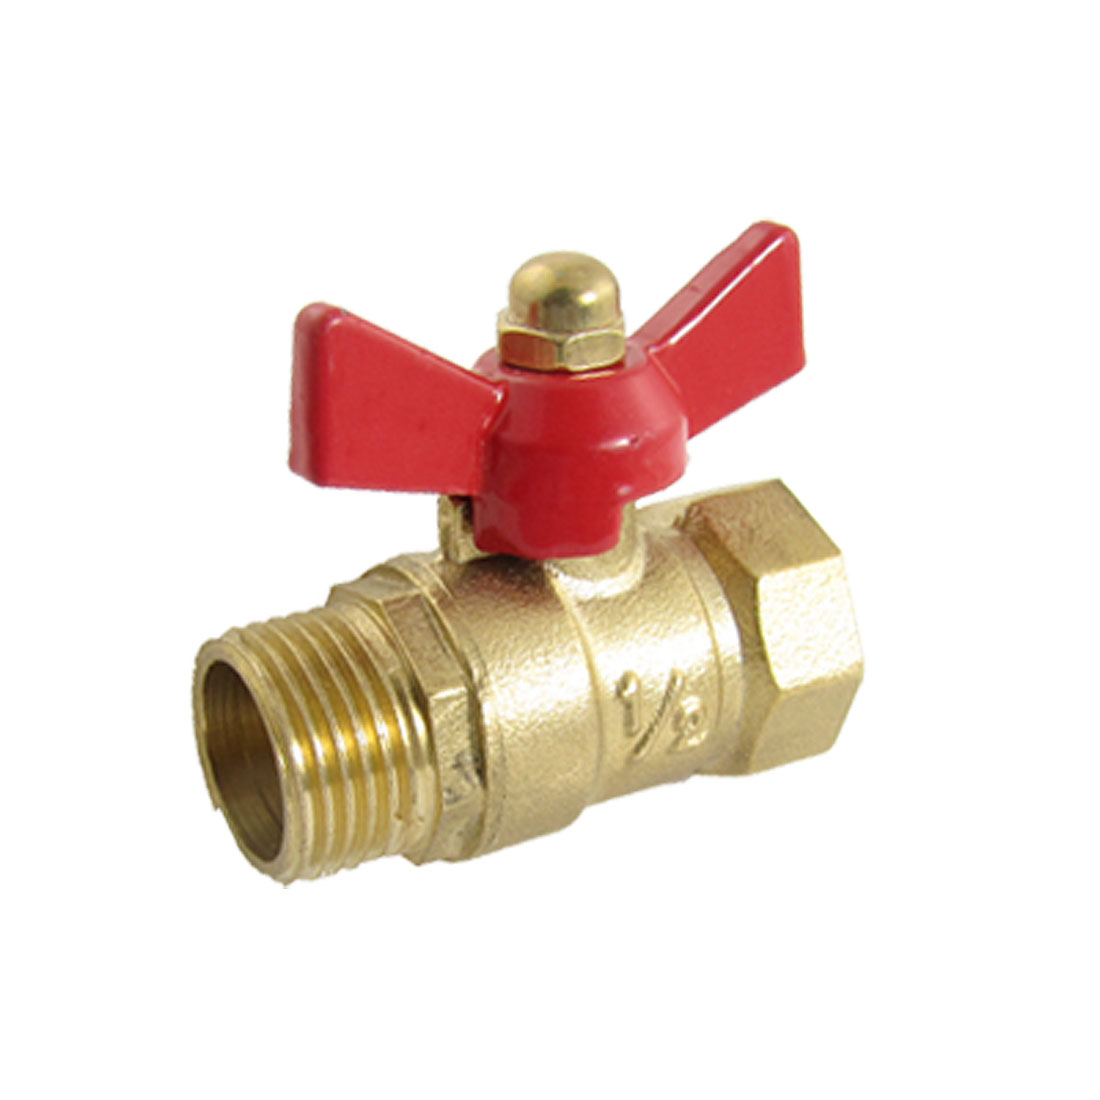 "0.73"" Female 0.63"" Male Thread Lever Handle Ball Valve"